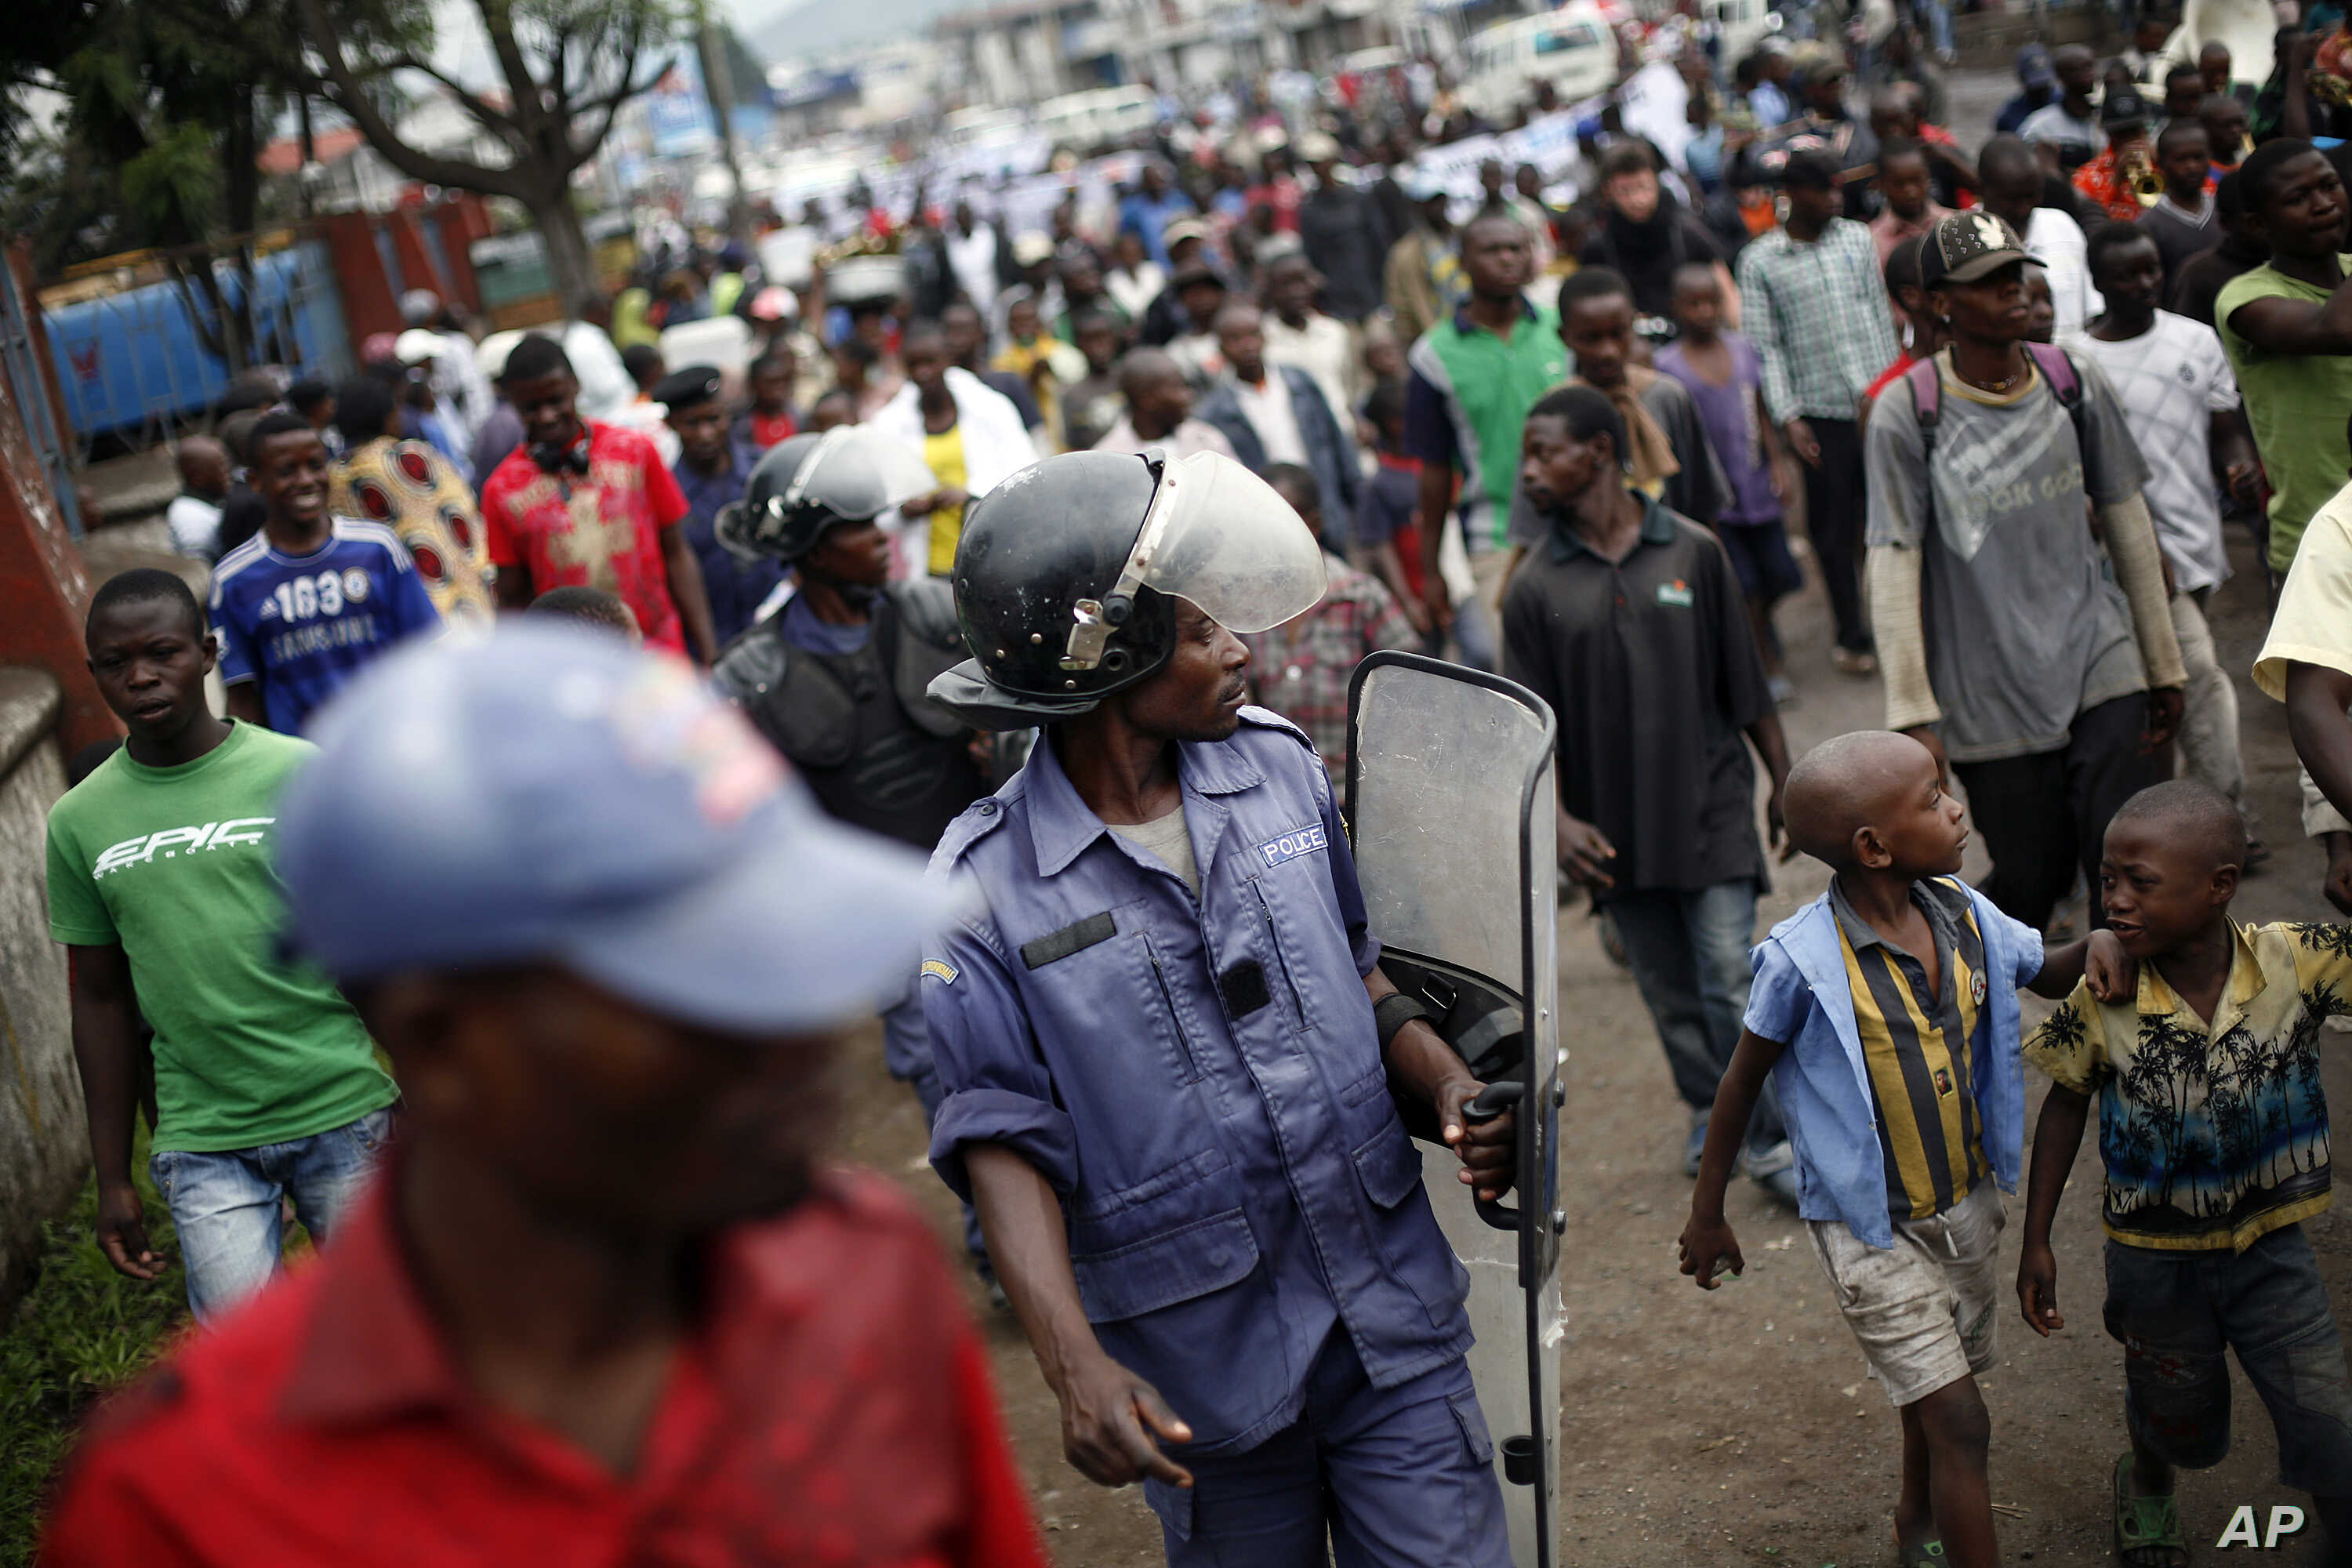 Congolese policeman in riot gear keeps an eye on Goma residents, including street children, who gathered for an anti-Kabila demonstration supported by the M23 rebel movement in Goma, DRC, November 28, 2012.